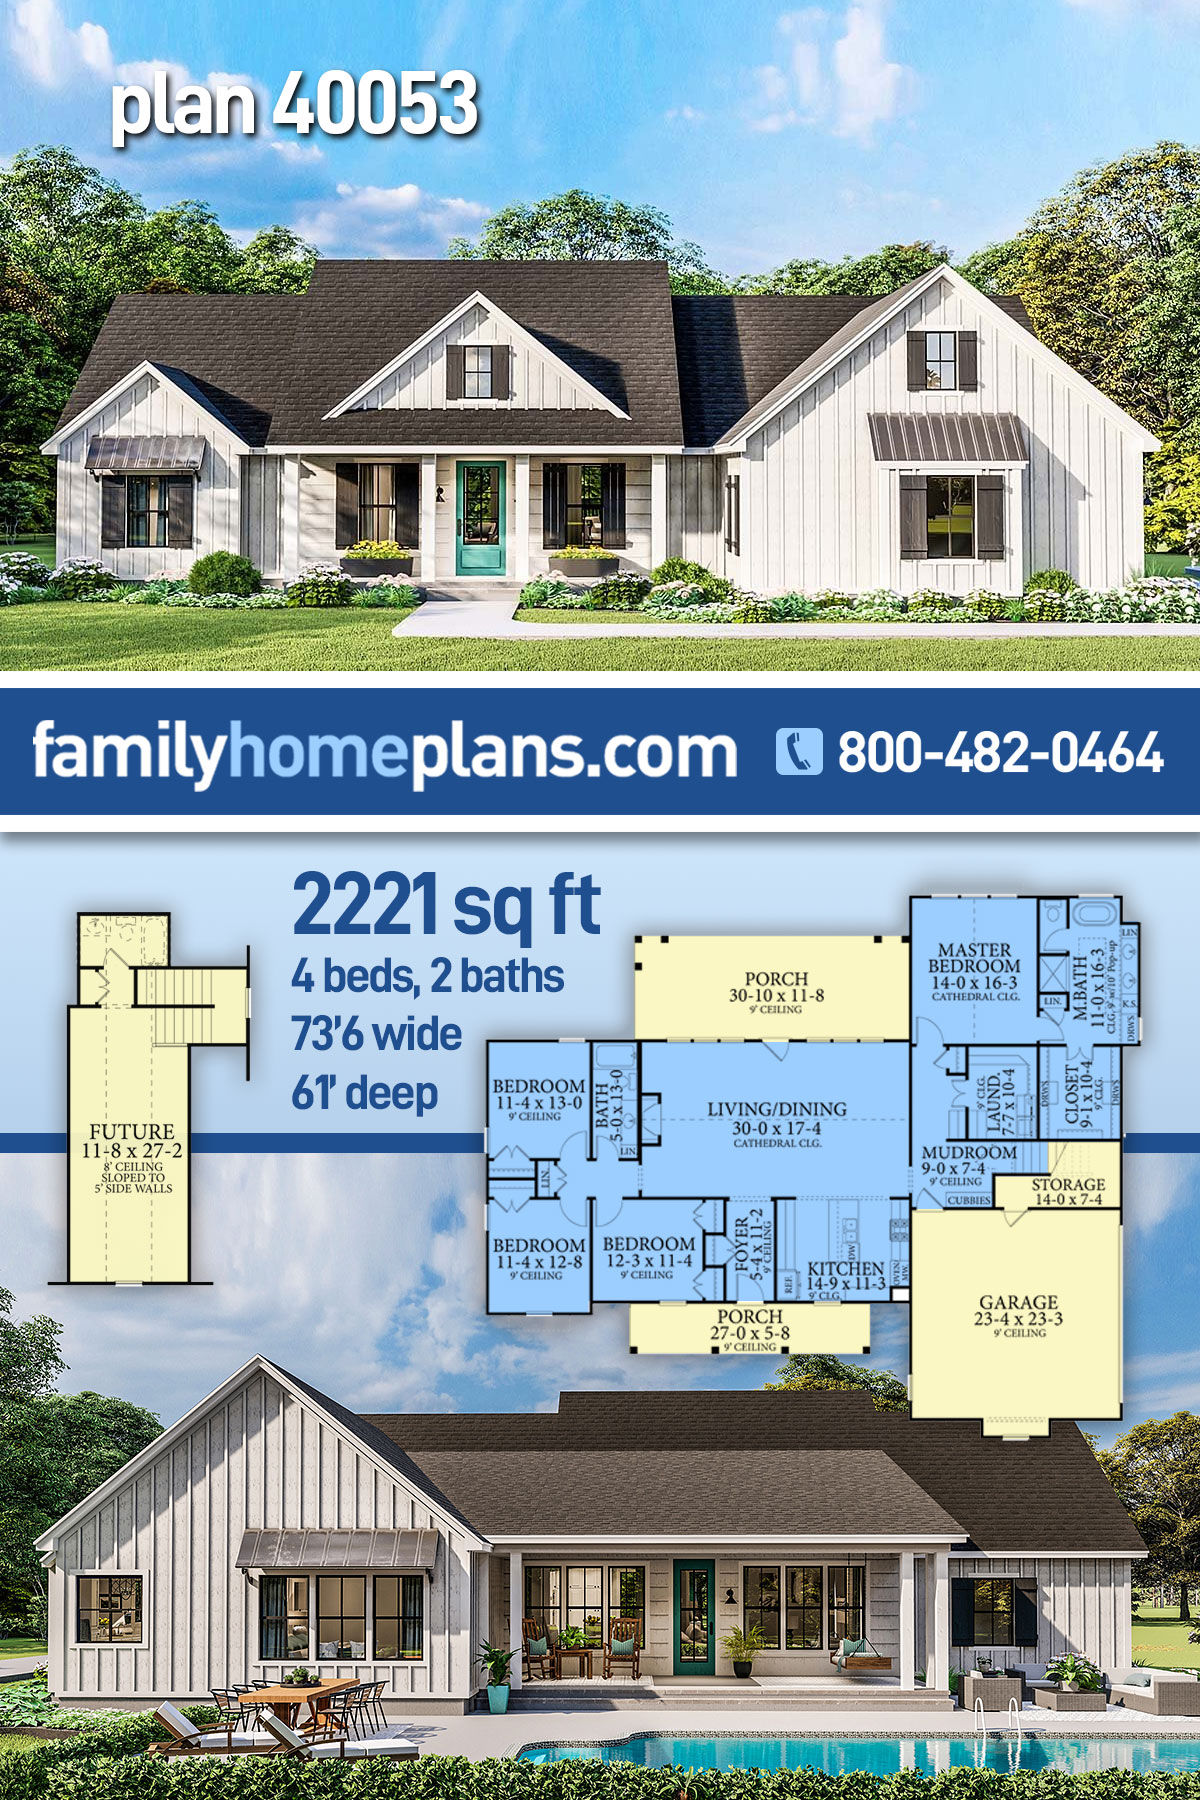 Country, Farmhouse, Ranch, Southern House Plan 40053 with 4 Beds, 2 Baths, 2 Car Garage